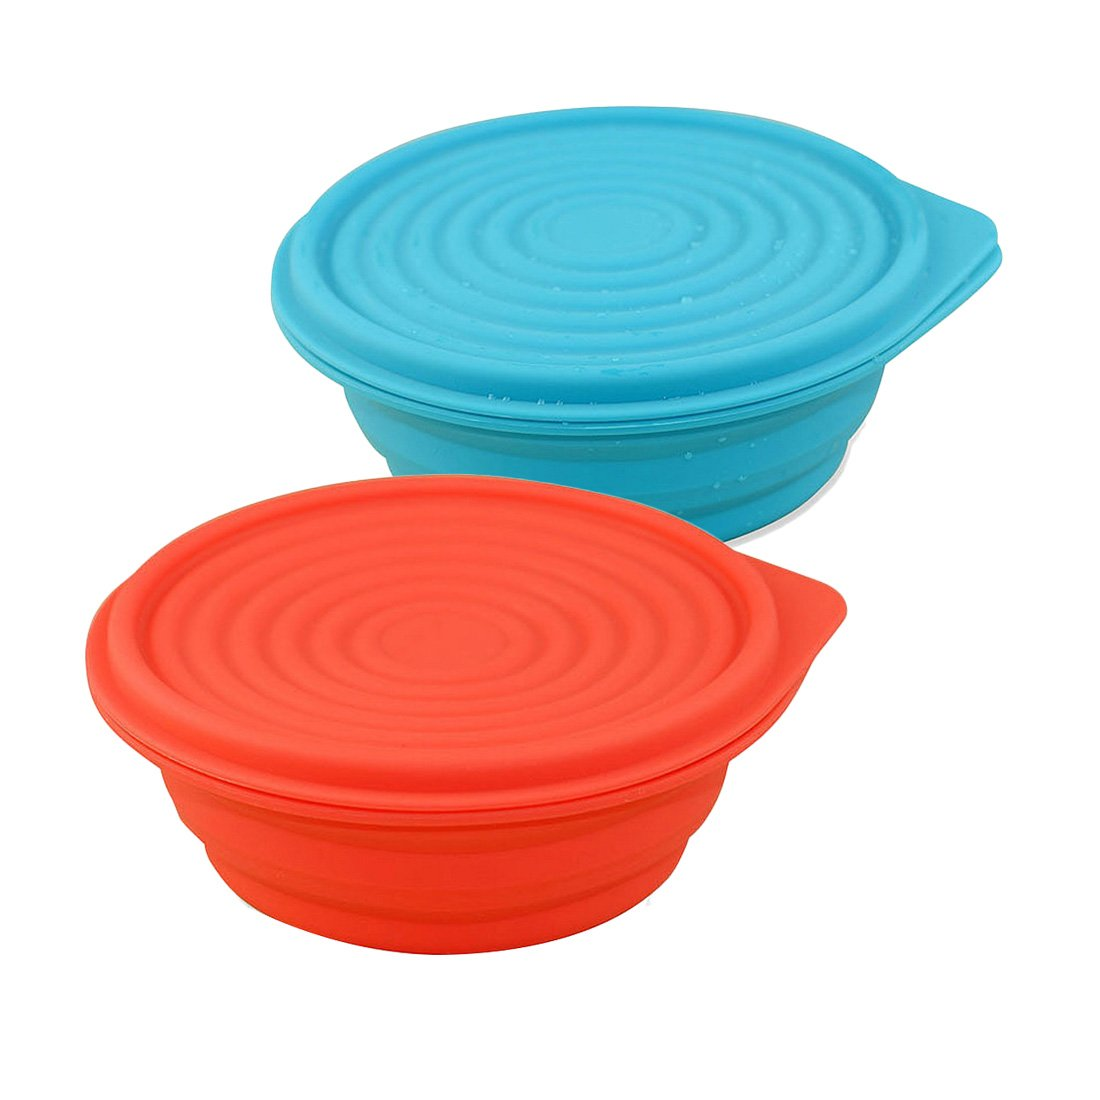 Collapsible Food Grade Silicone Bowls with Lids, BPA-free, Camping, Traveling, Pets, Hiking, Expandable Portable Backpacking Bowl (2 PC) by LTFT (Image #7)